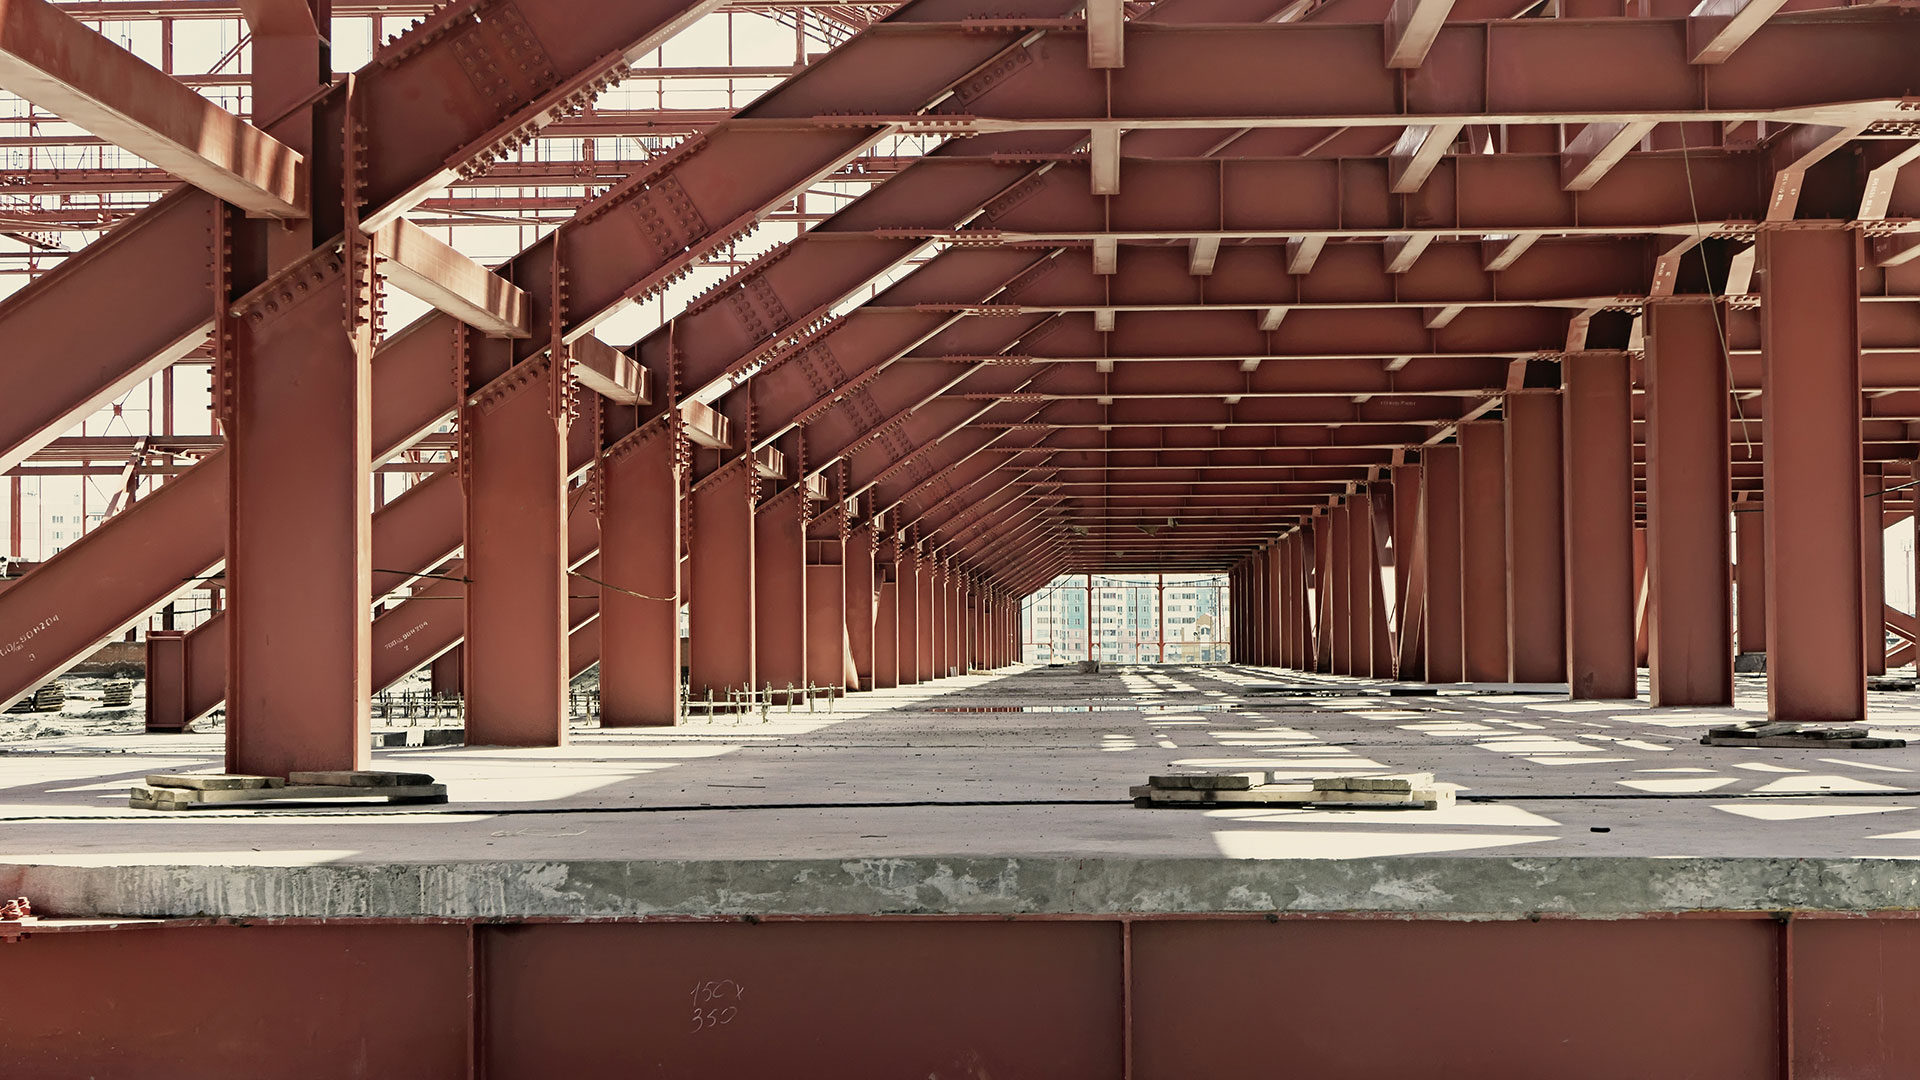 Hallway bridge of red steel girders